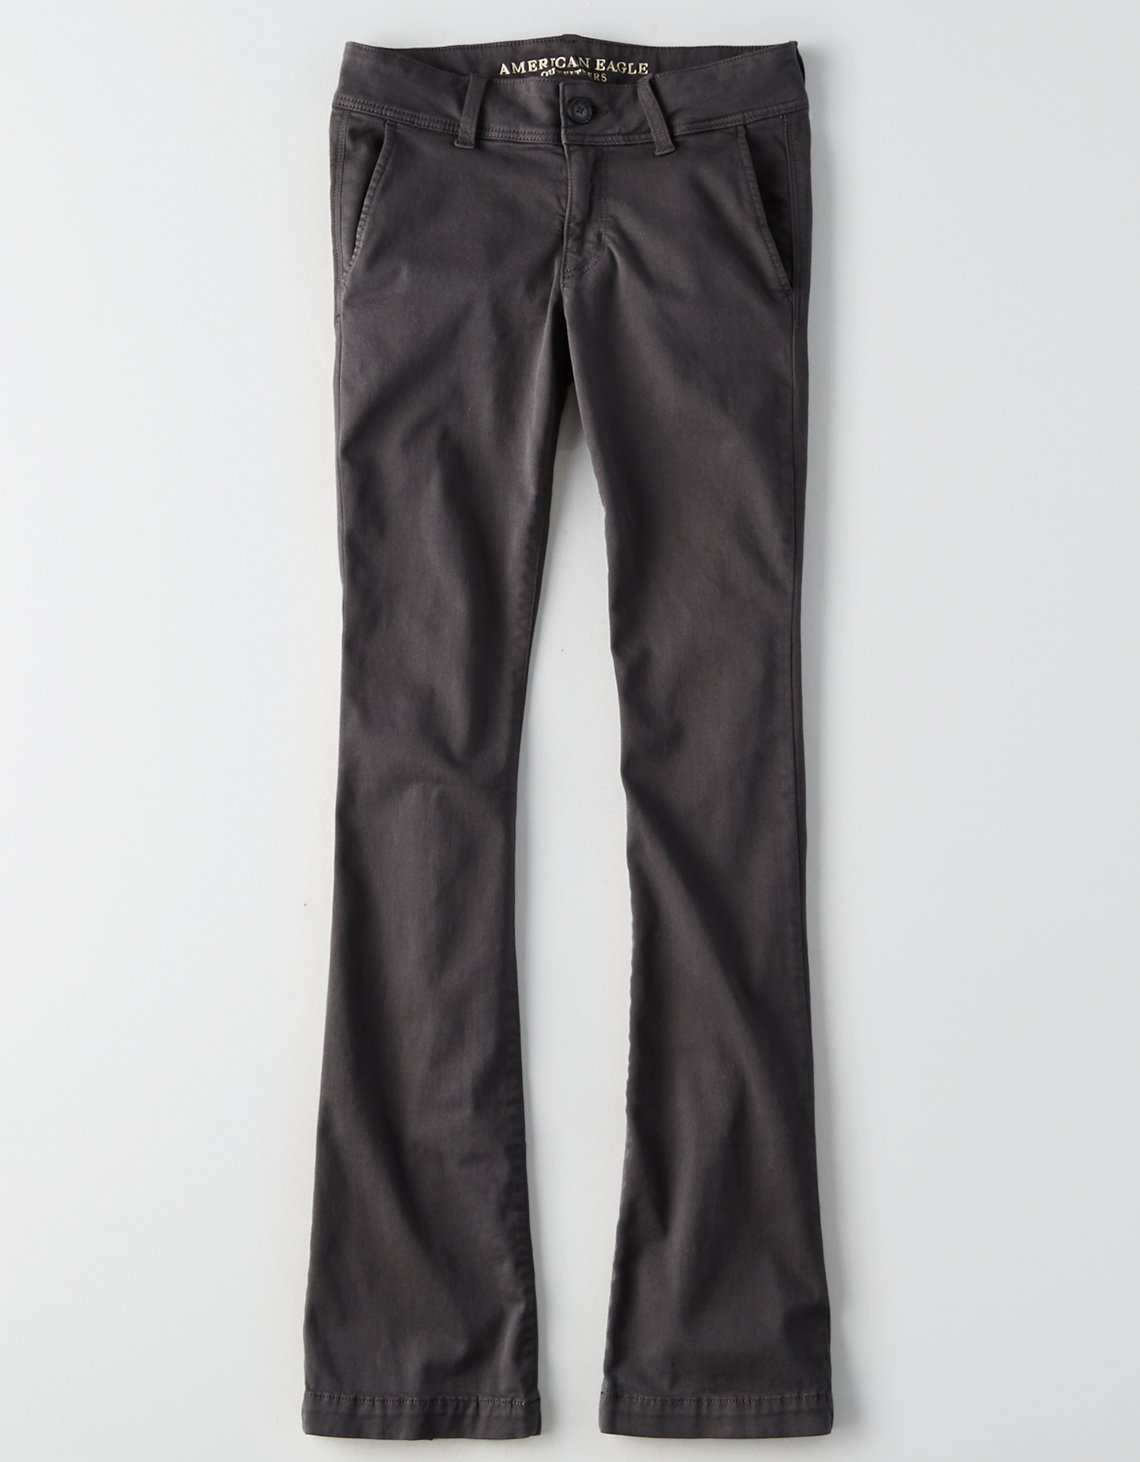 AE Denim X Kick Boot Pant